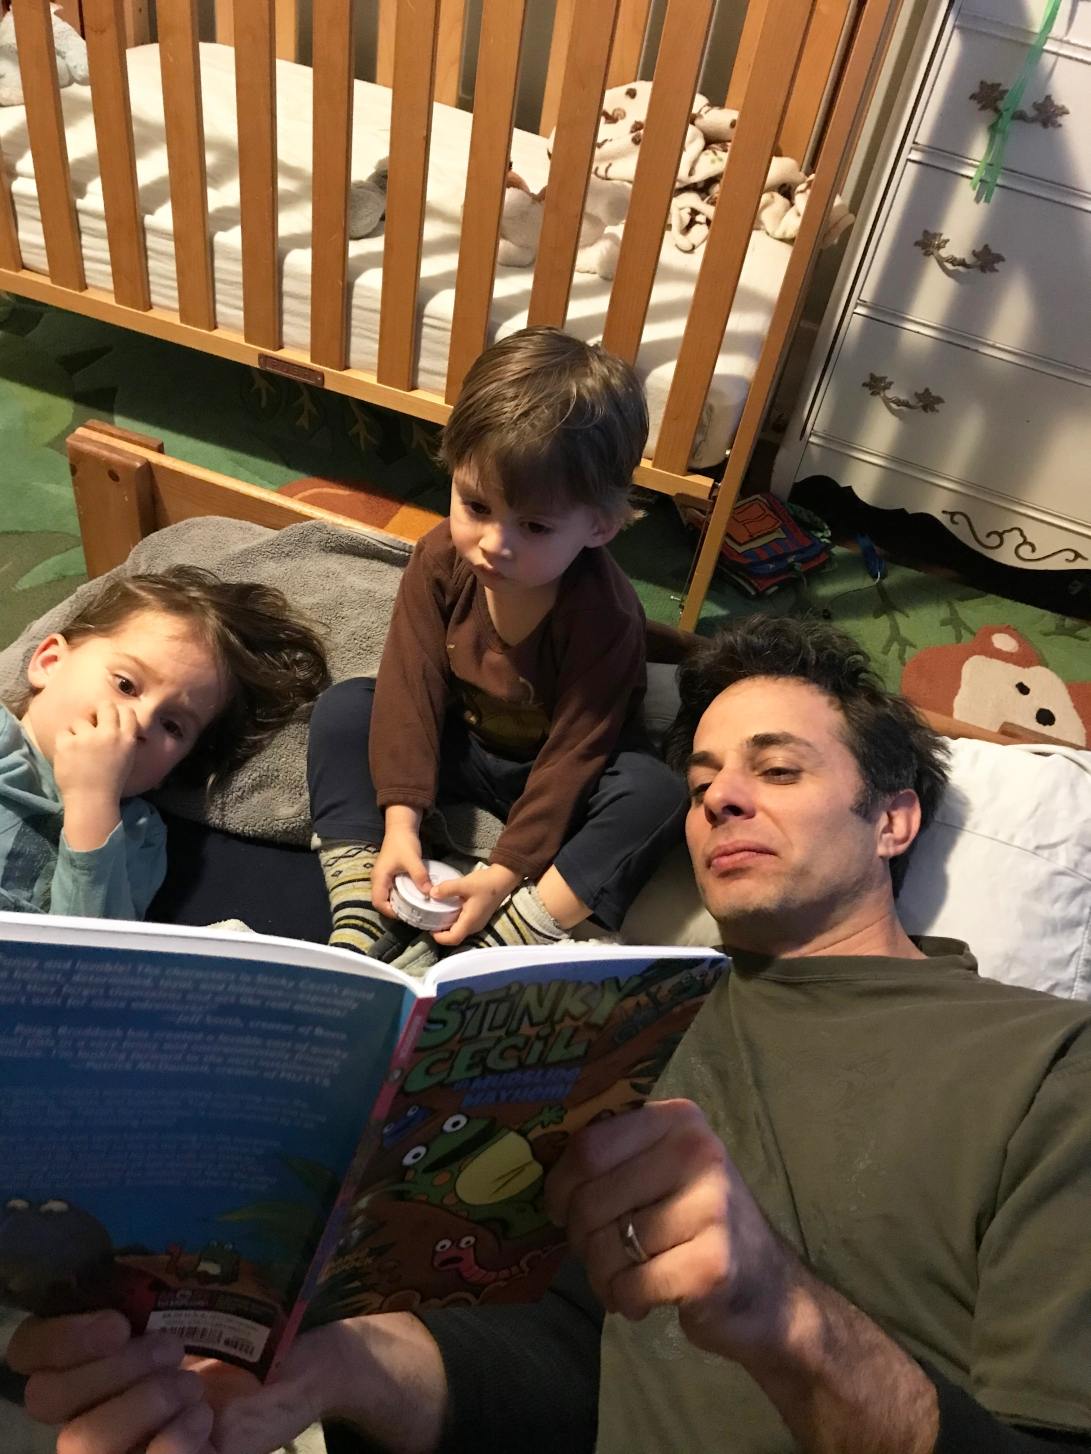 Photo of Dad with two sons reading Mudslide Mayhem